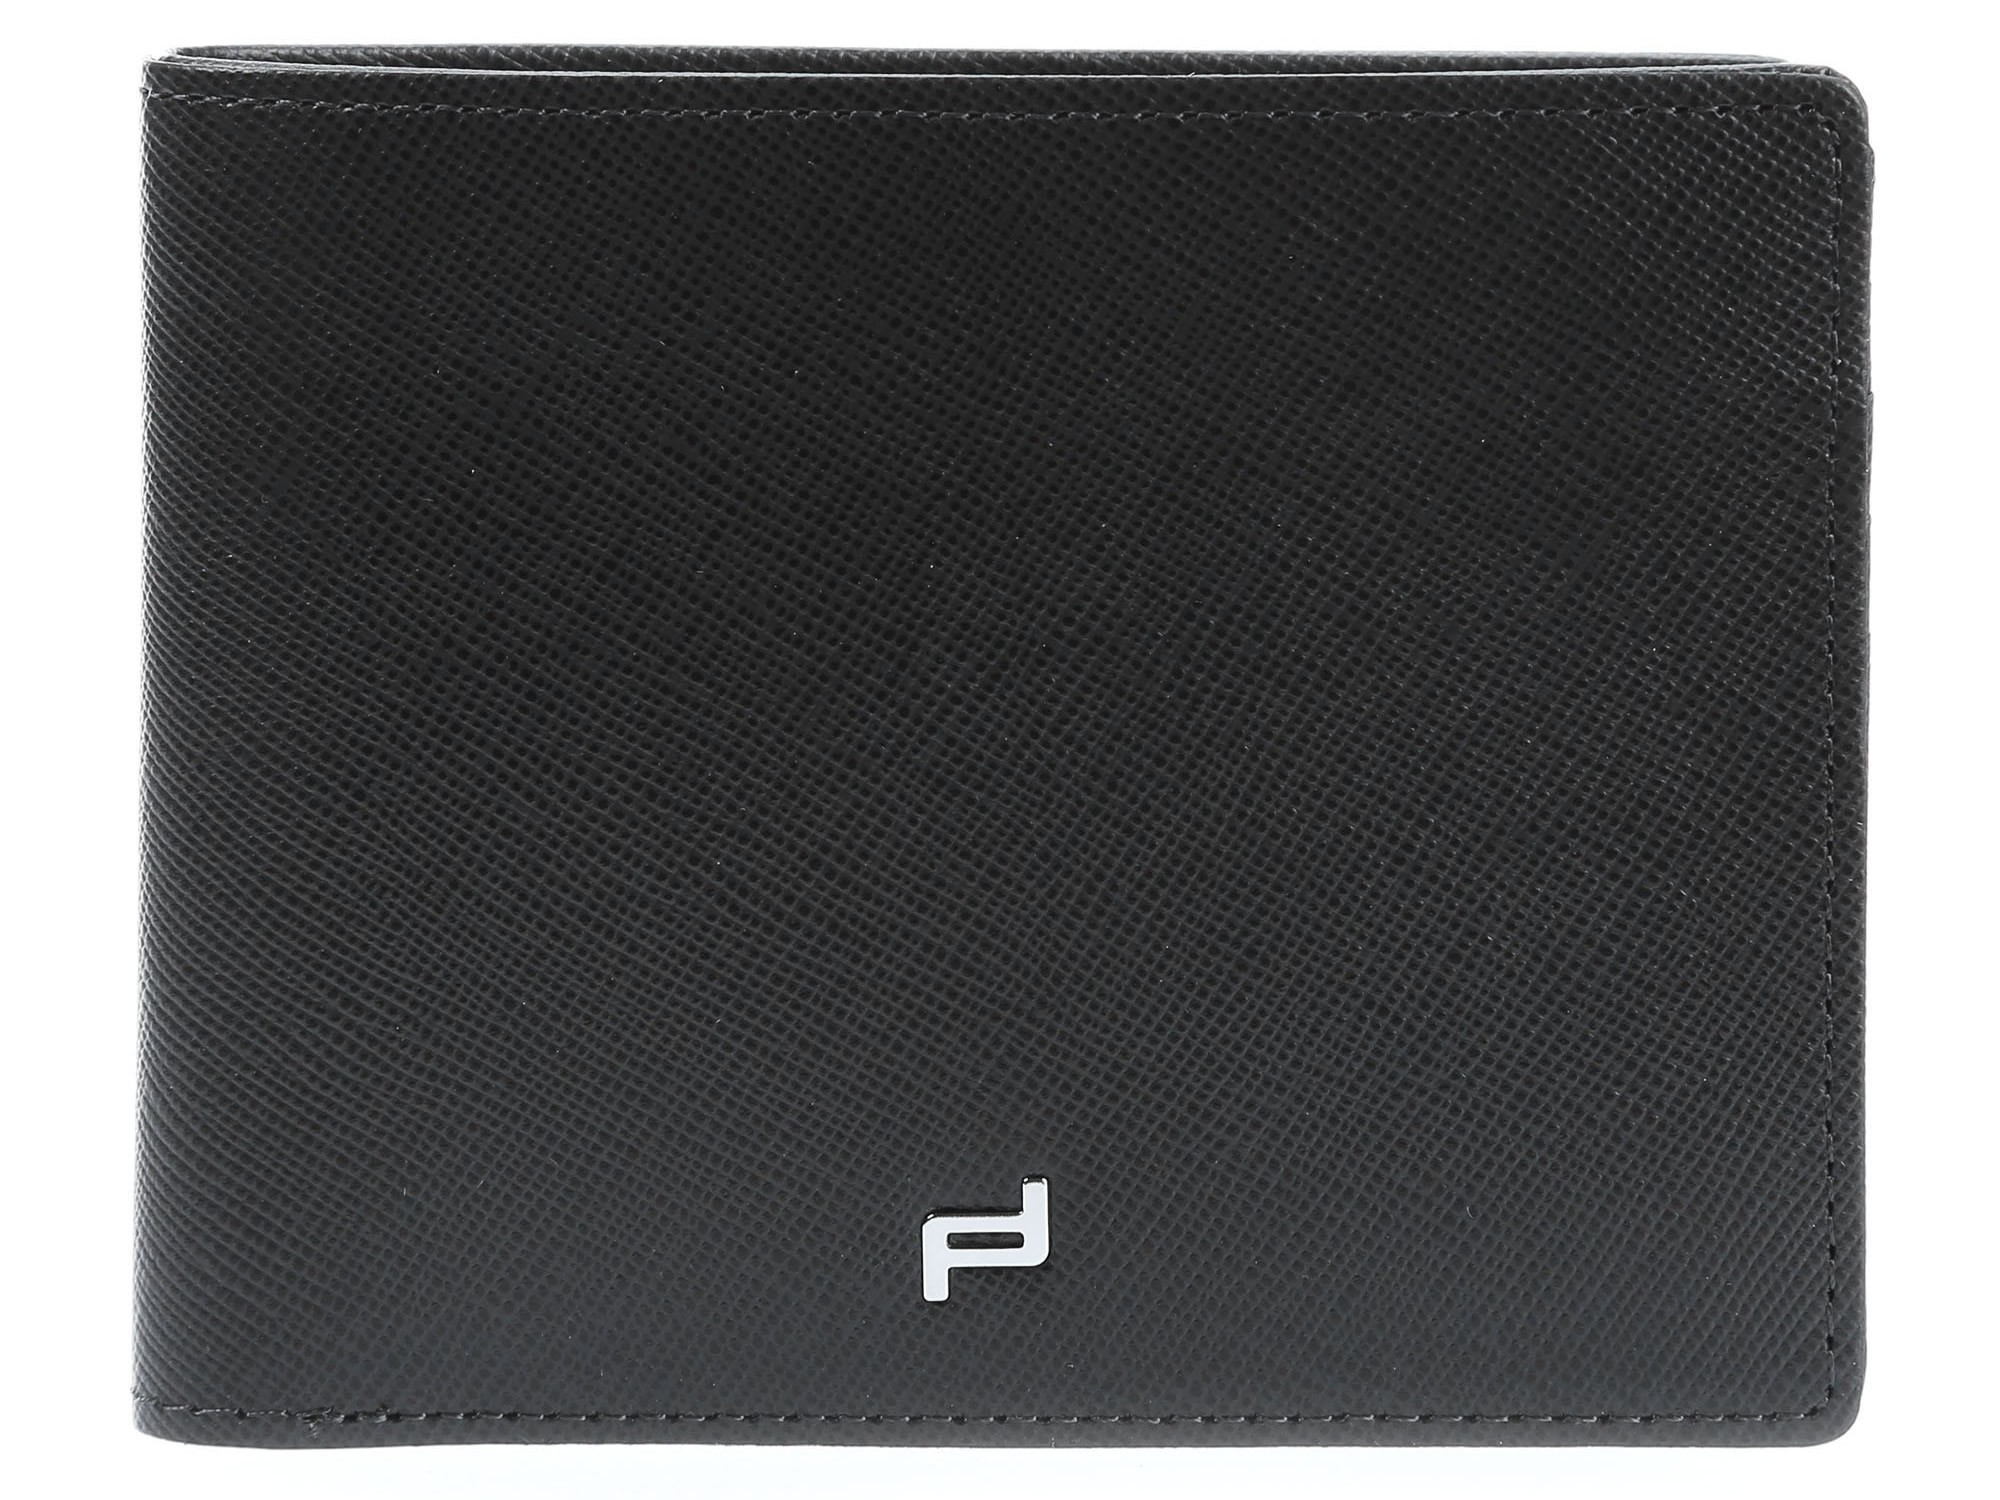 porsche design geldb rse wallet h8 saffiano porsche geldbeutel. Black Bedroom Furniture Sets. Home Design Ideas